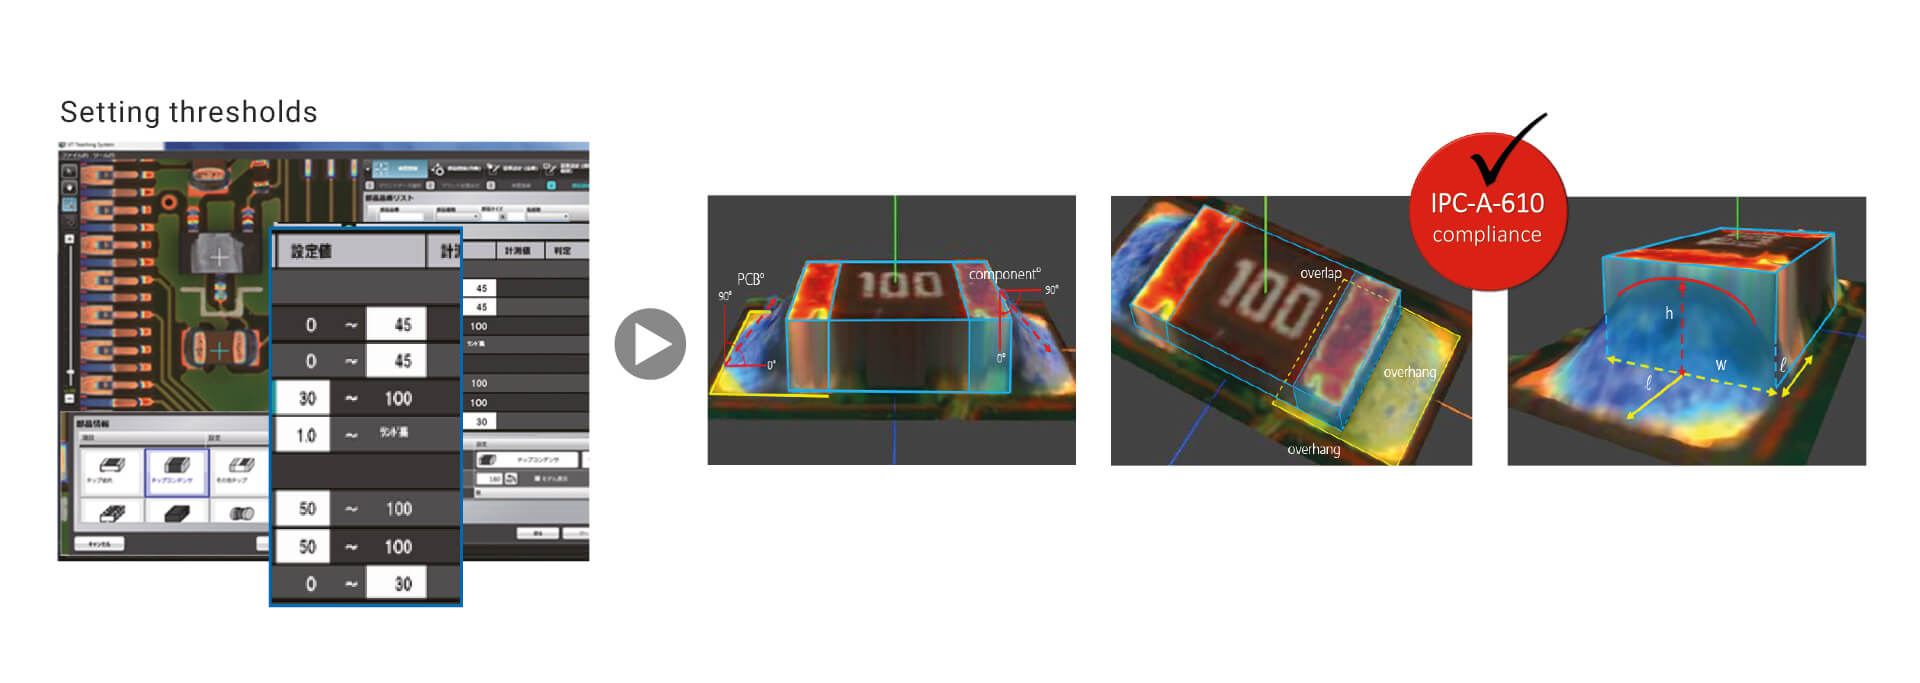 s1080 features tab images misc